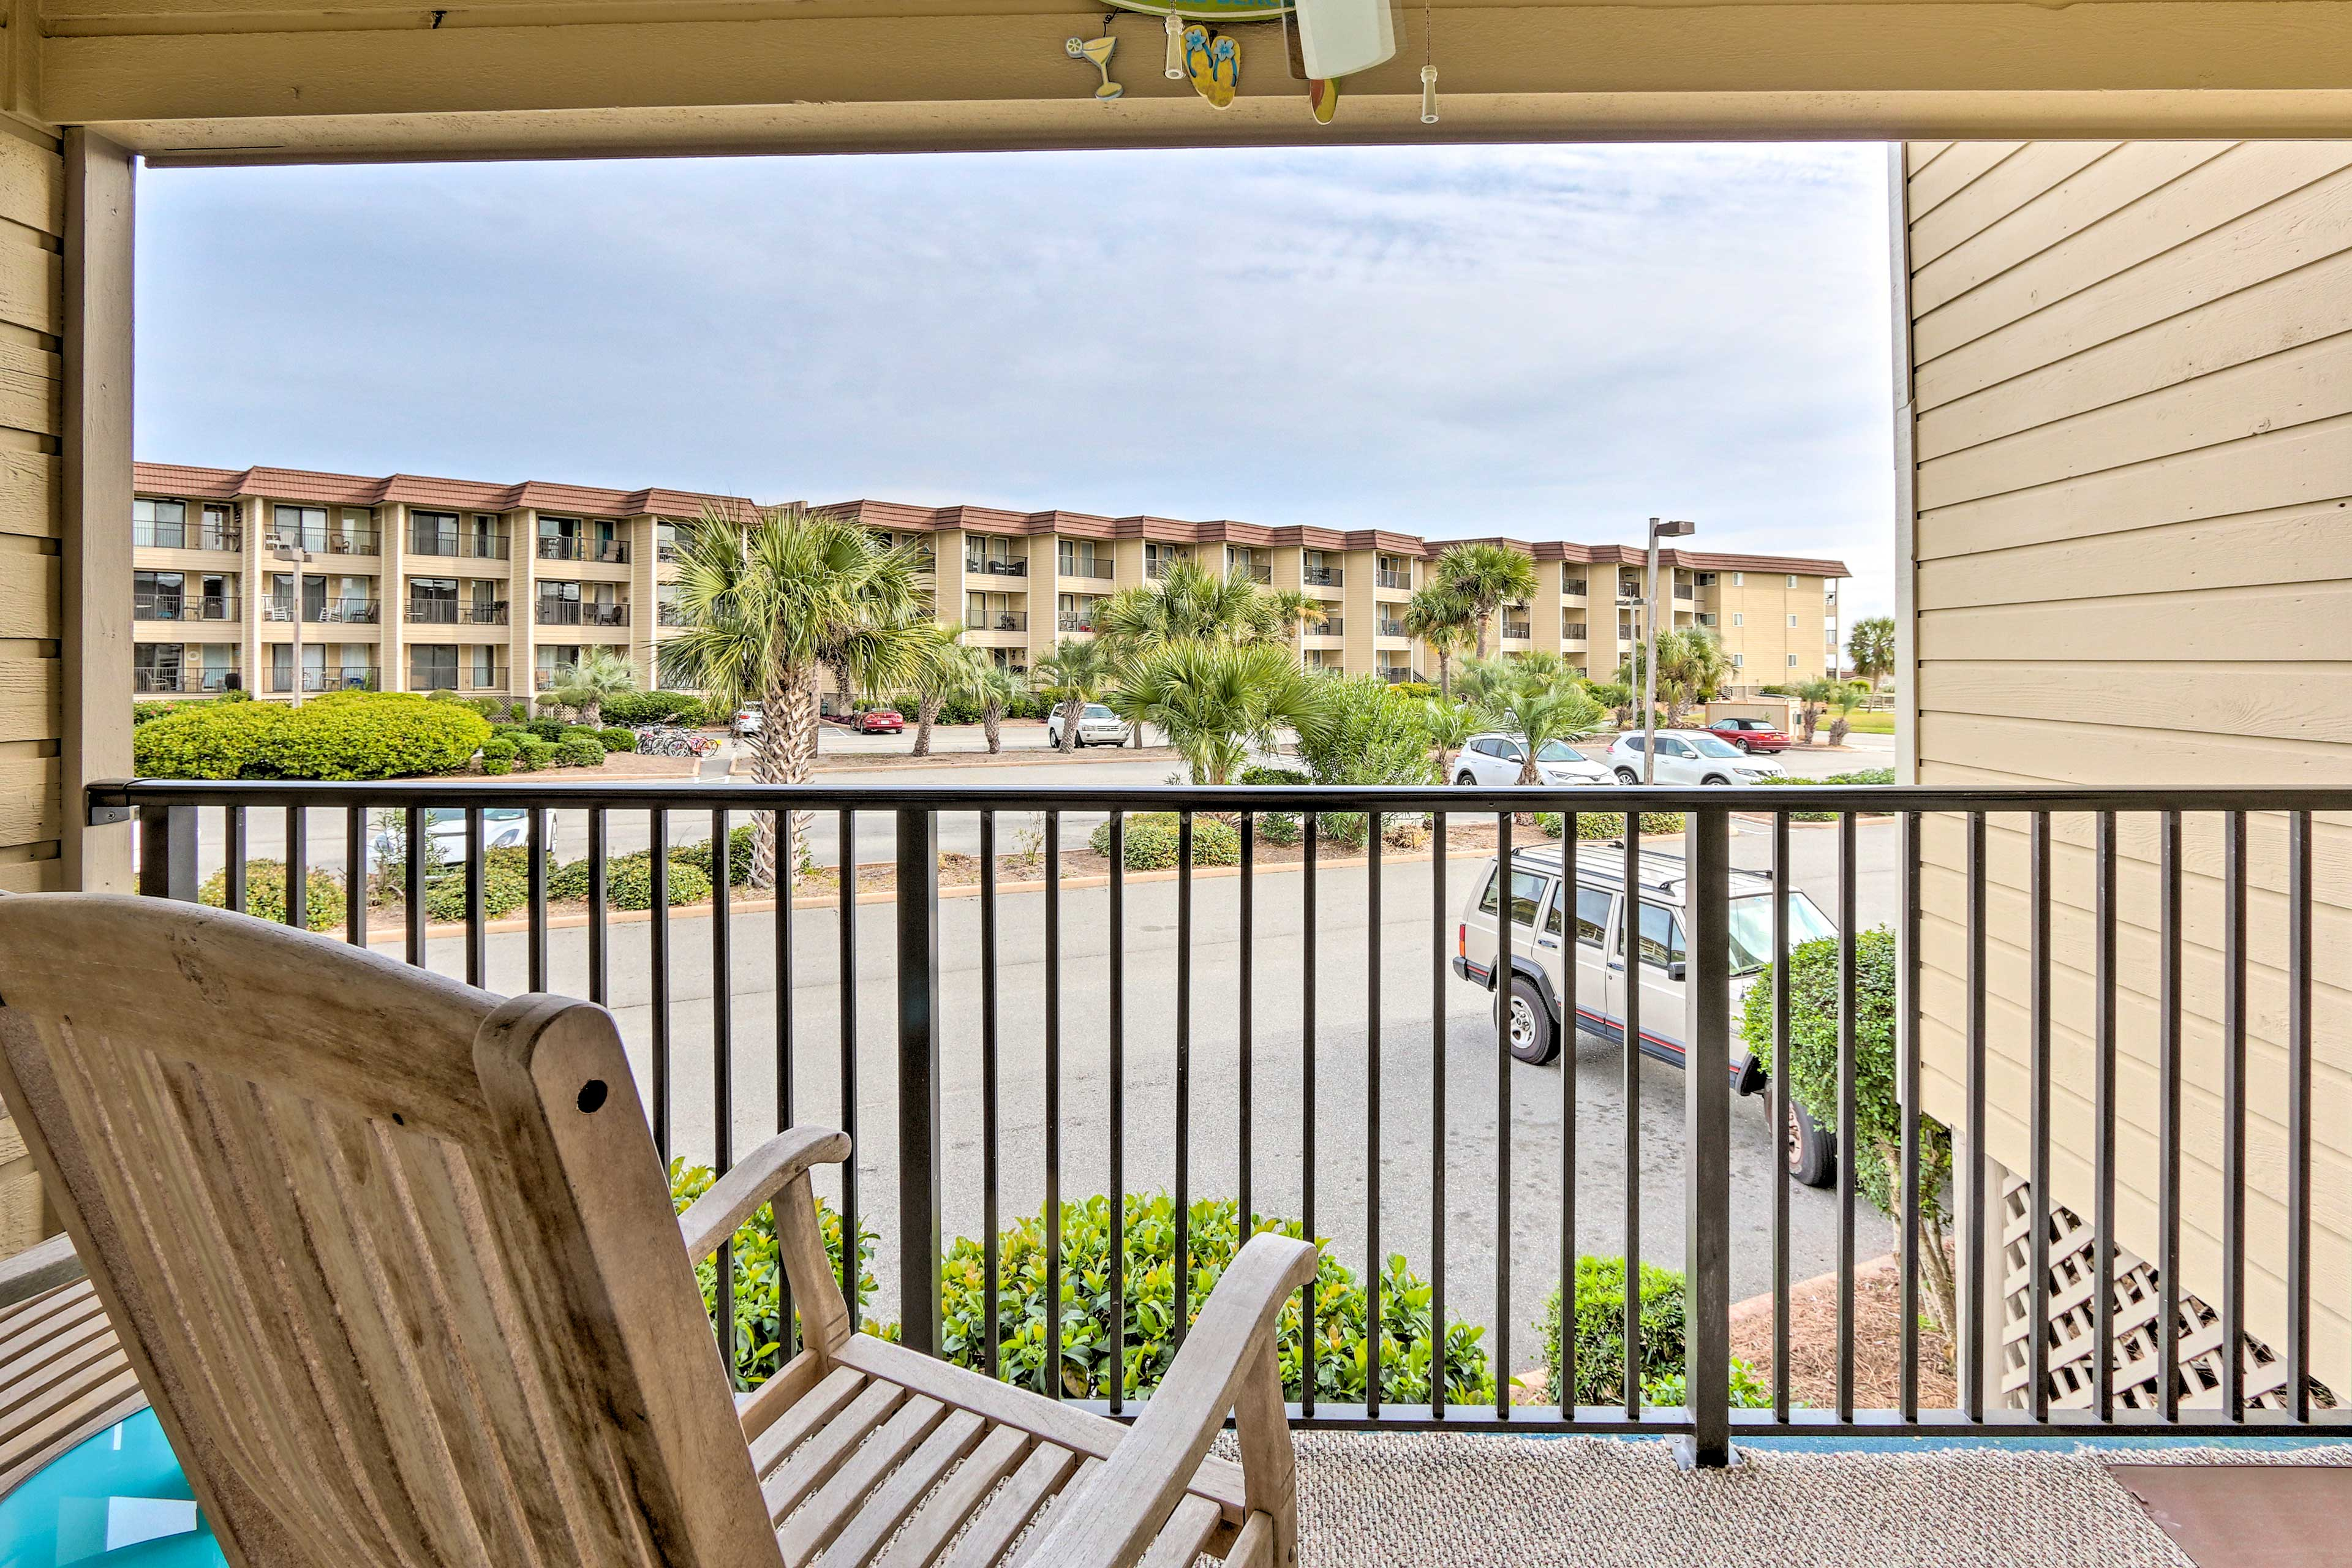 Head out to the deck furnished with rocking chairs.